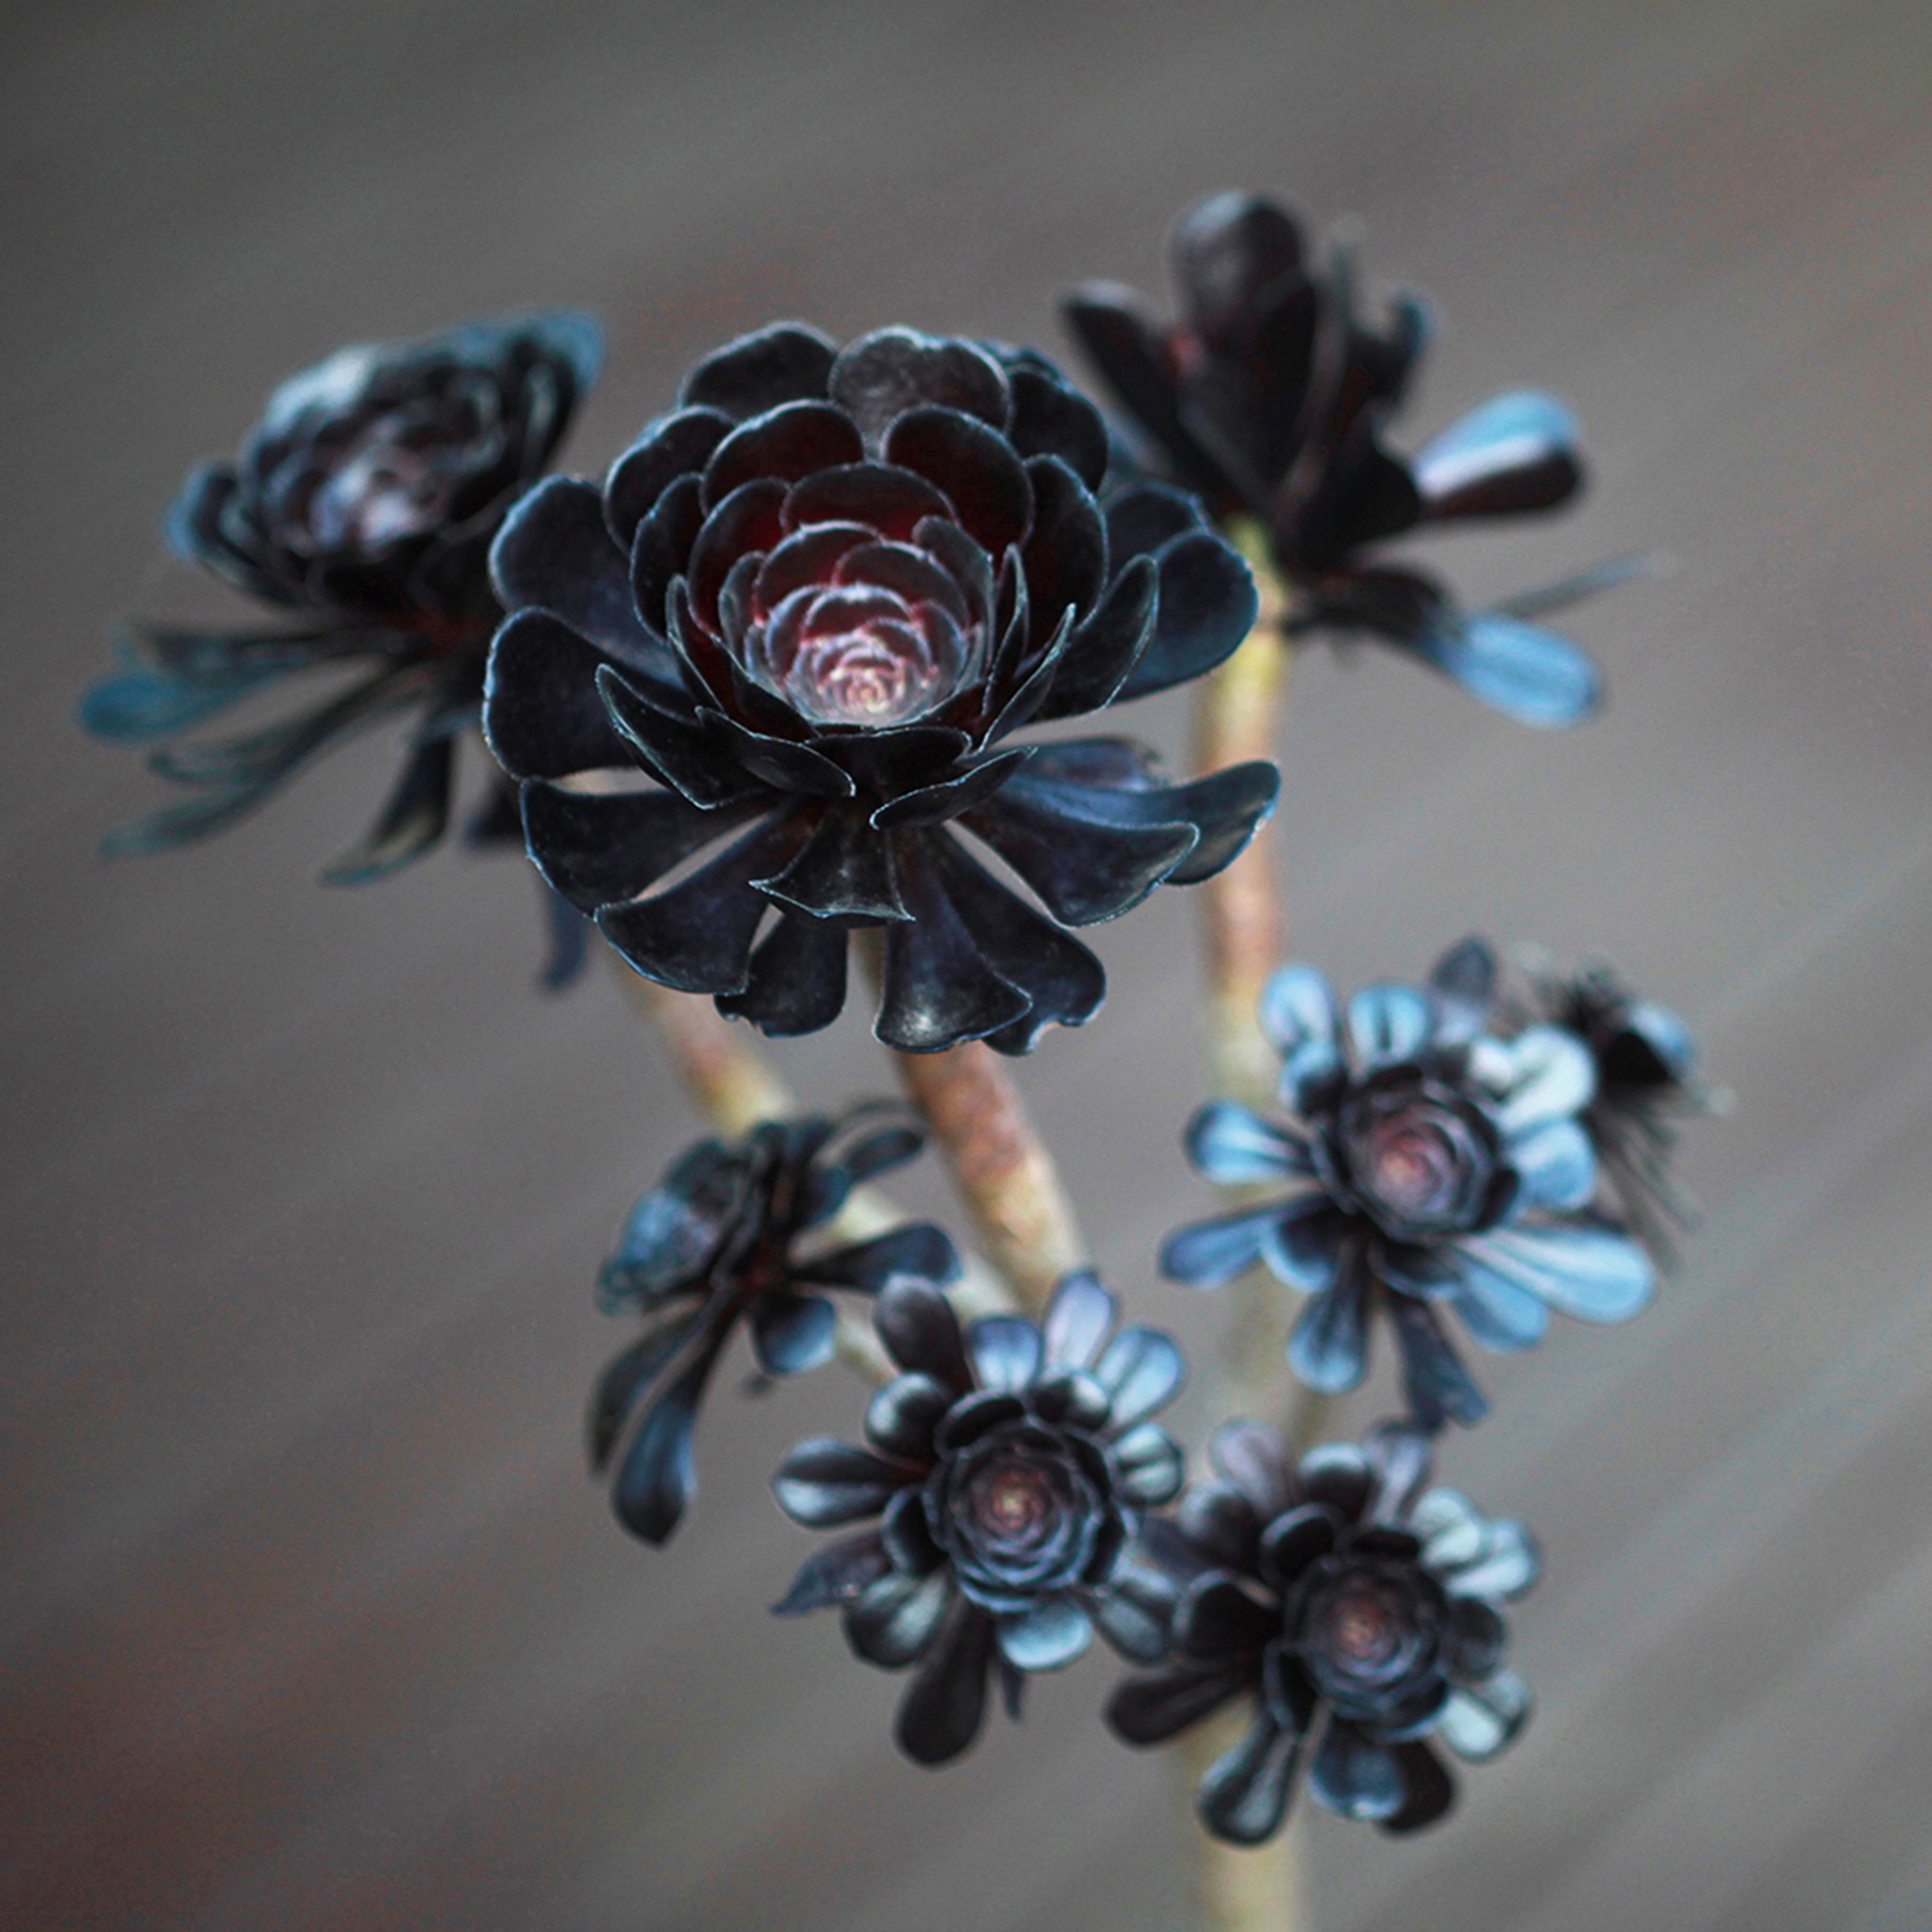 Black Succulents Will Turn Your Home Into a Haunted House This Fall